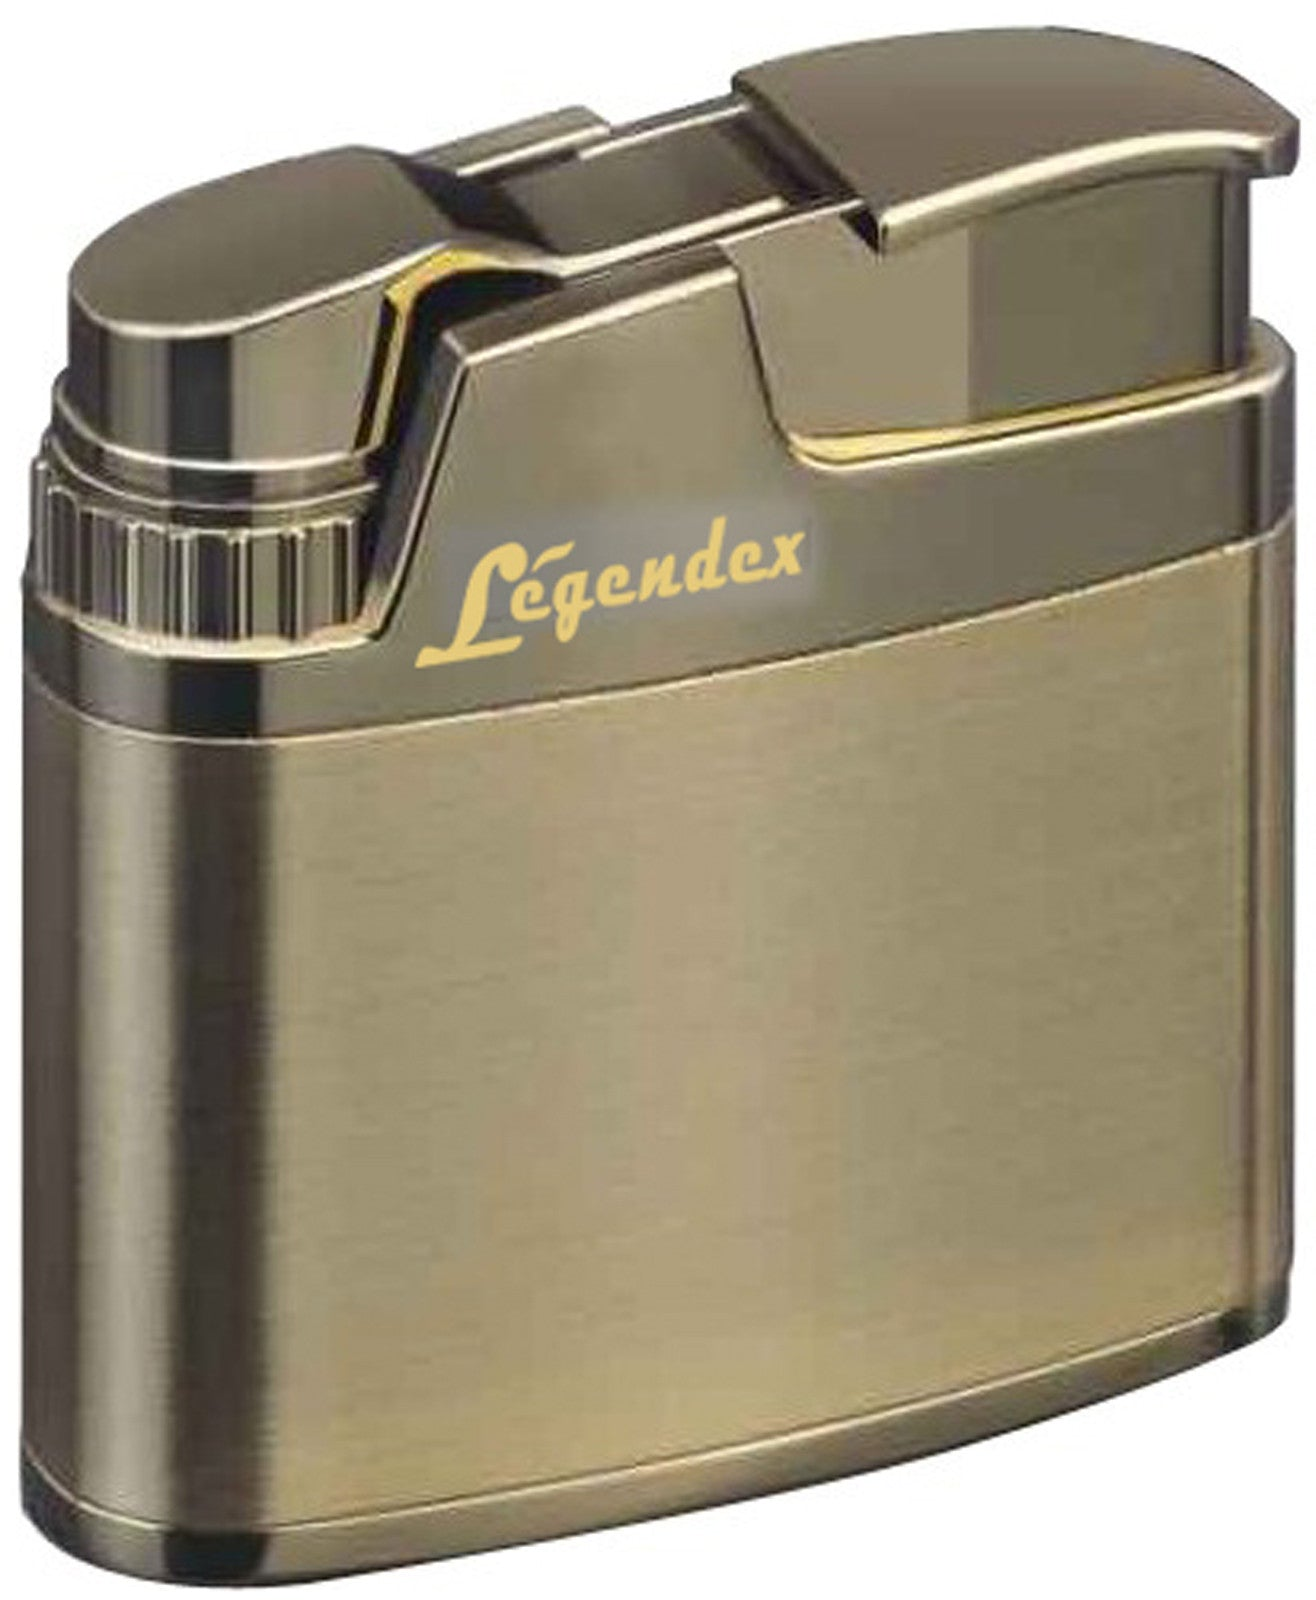 Legendex Climber Turbo Windproof Lighter 06-55-203 Titanium bright